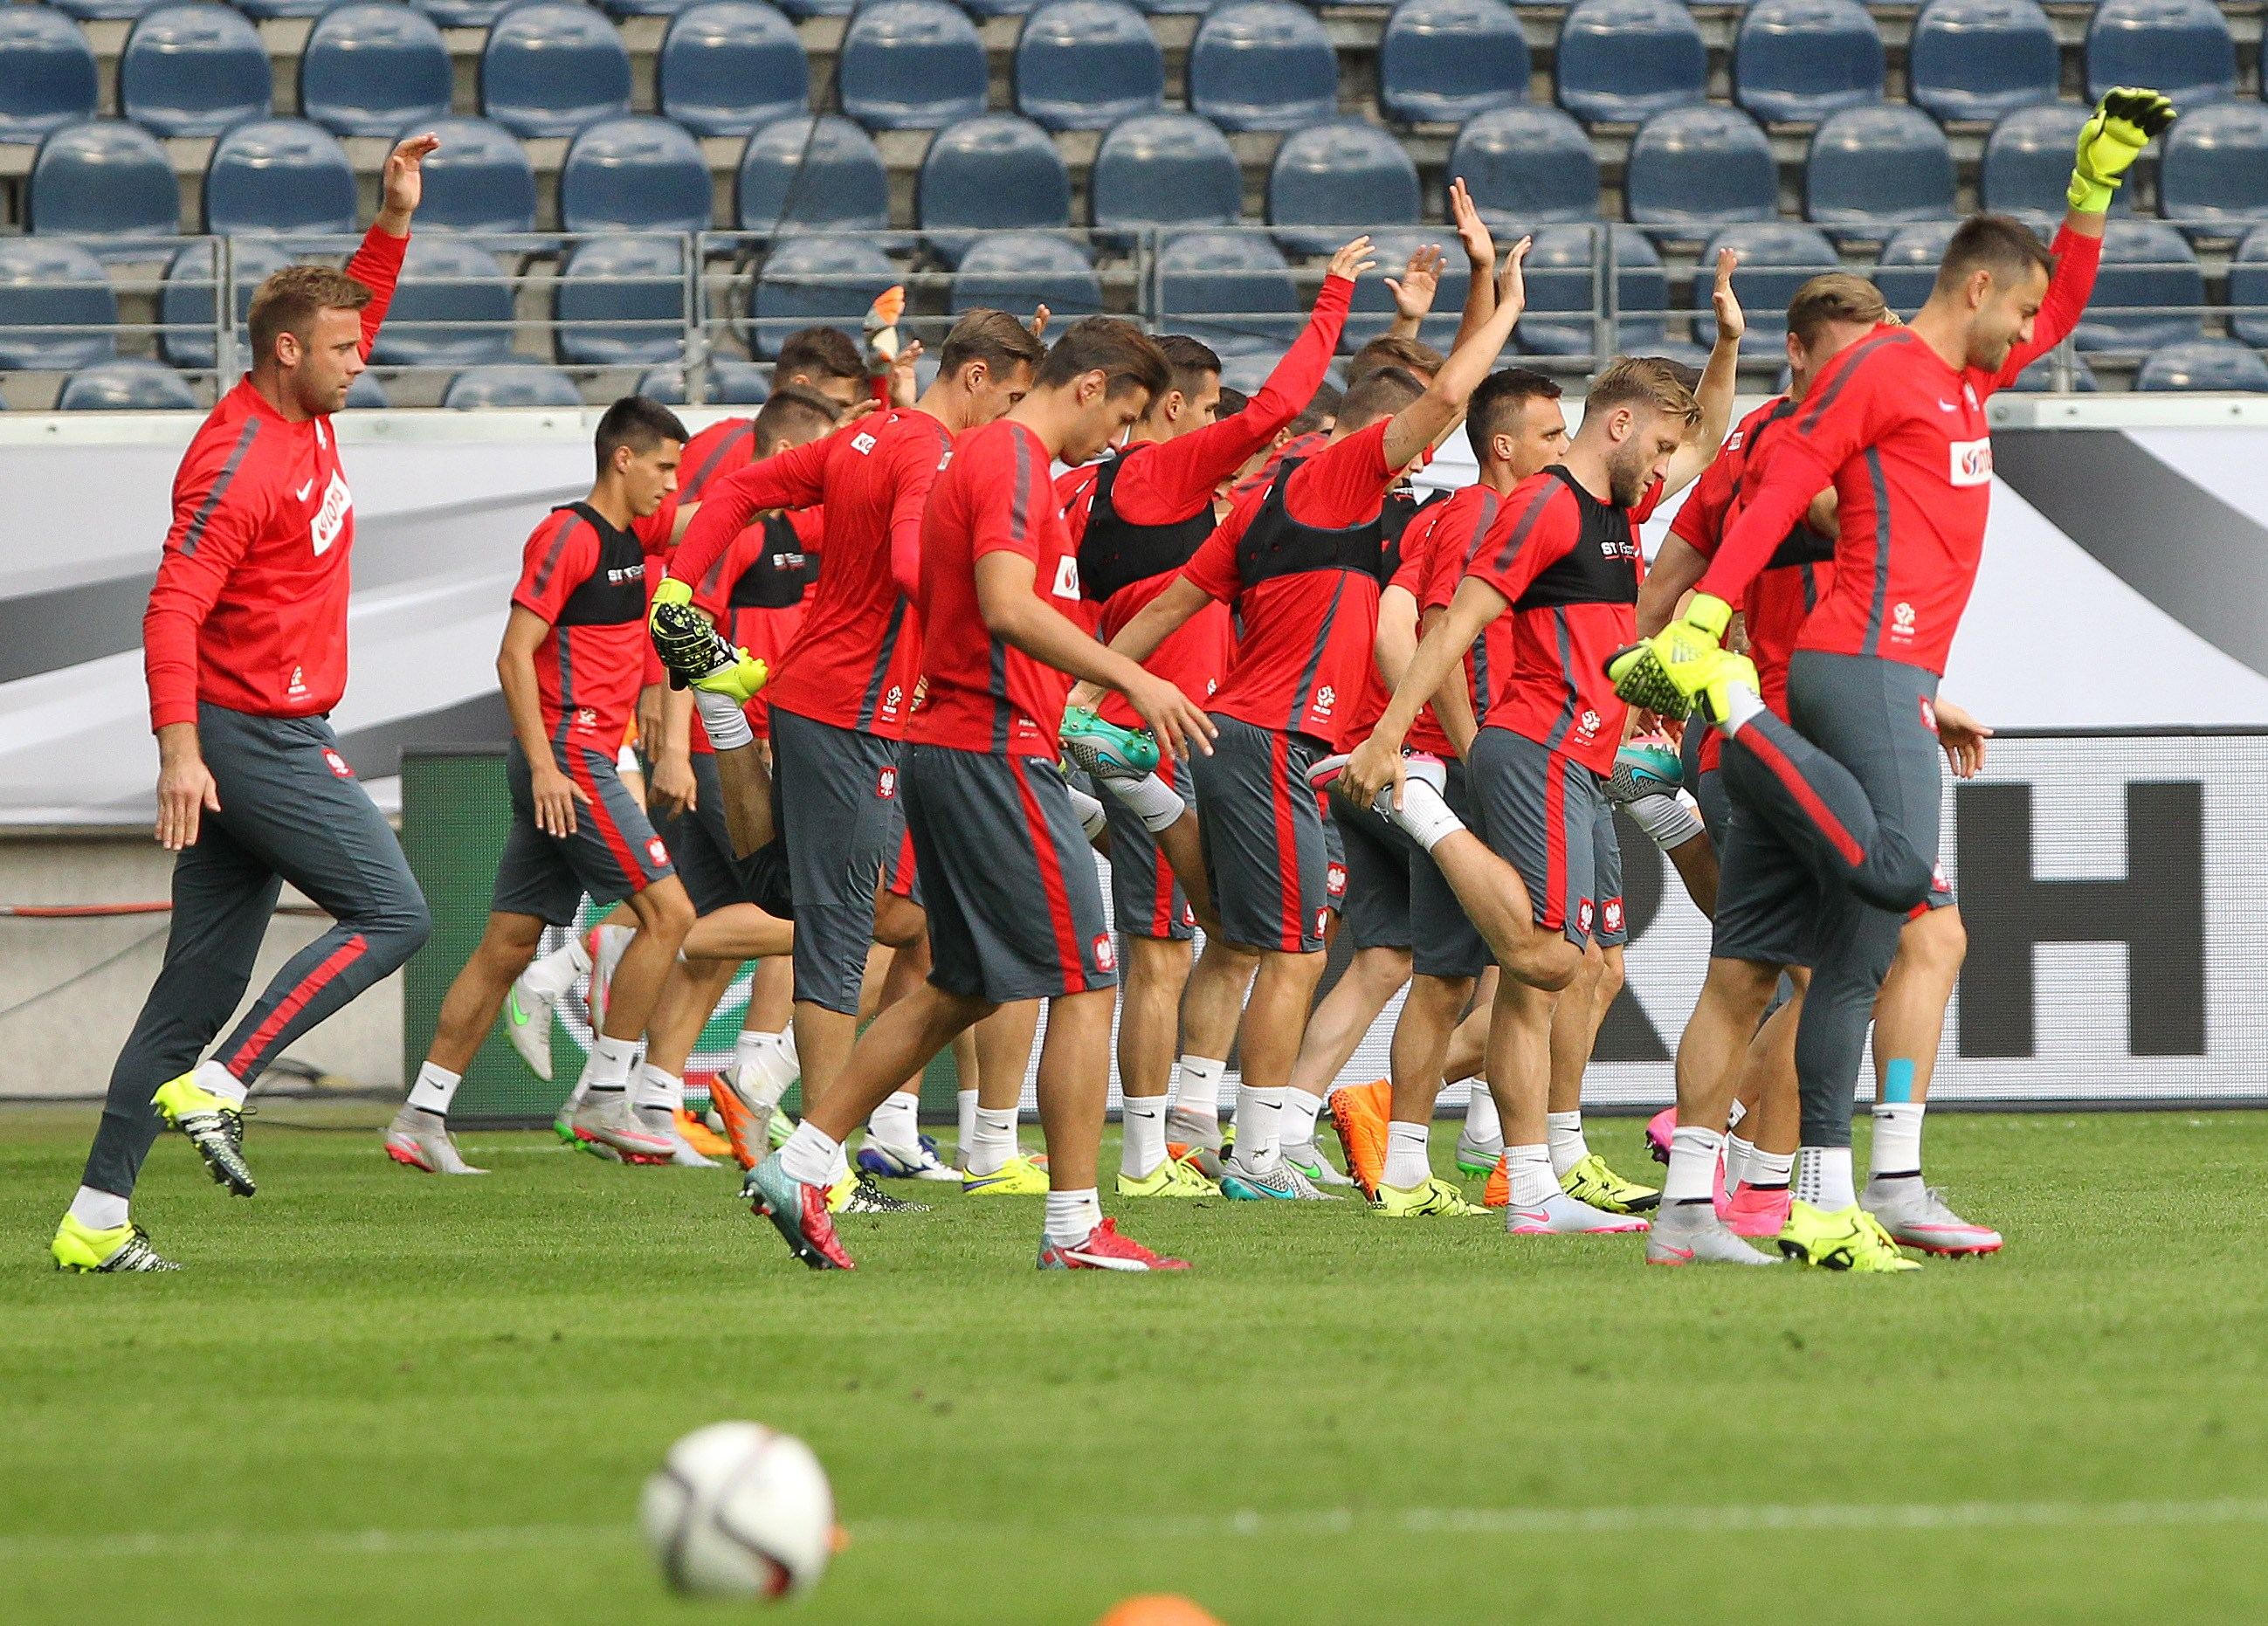 Members of the Polish national football team attend a public training session in Frankfurt/Main, Germany on September 3, 2015 prior to the EURO qualifier Germany vs Poland on September 4, 2015. AFP PHOTO / DANIEL ROLAND        (Photo credit should read DANIEL ROLAND/AFP/Getty Images)